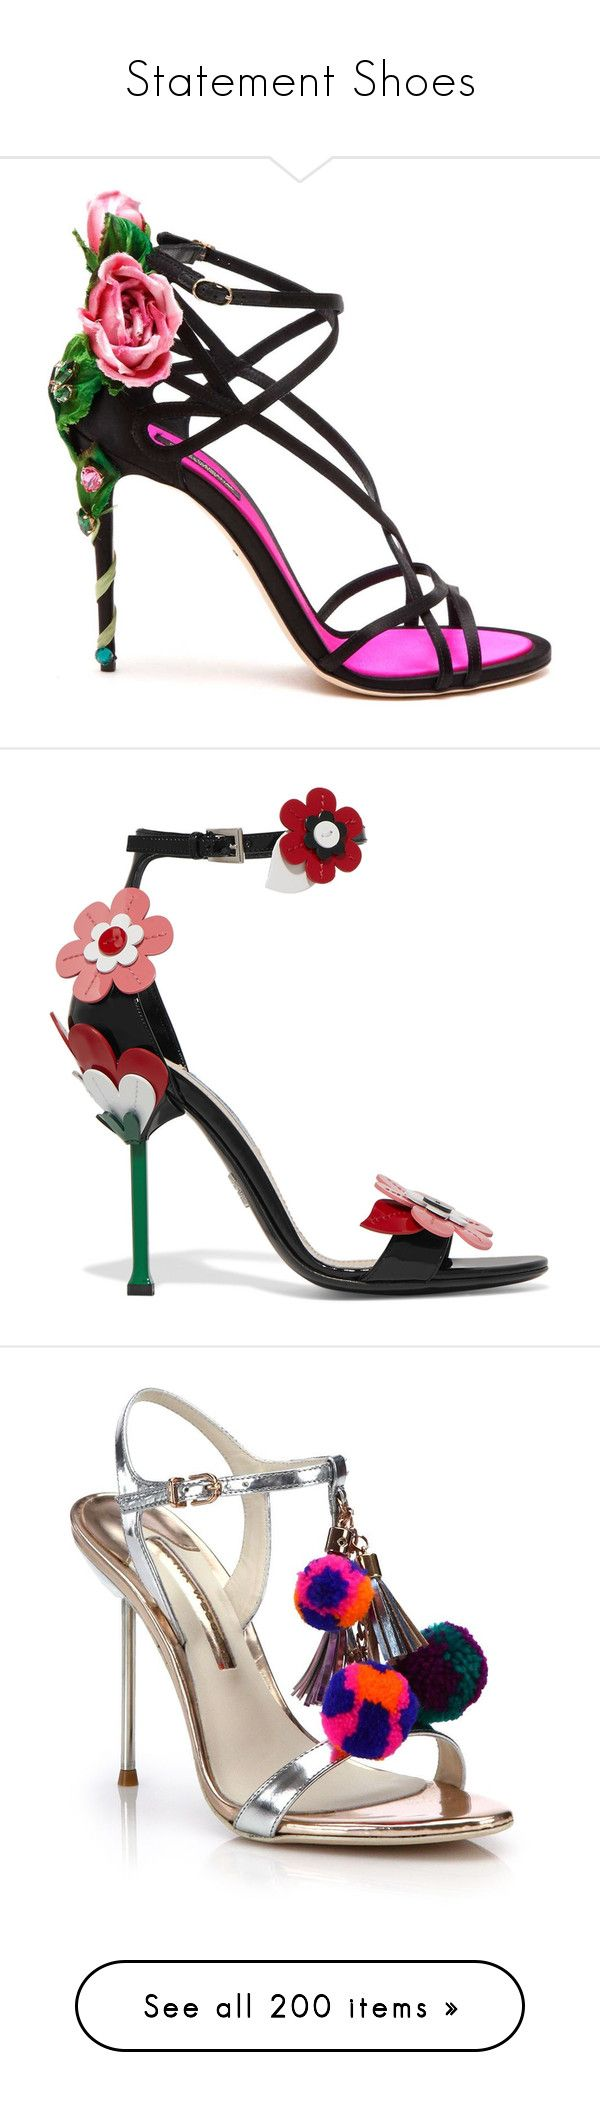 """""""Statement Shoes"""" by happilyjynxed on Polyvore featuring shoes, sandals, heels, print shoes, embellished sandals, high heeled footwear, dolce gabbana sandals, patterned shoes, prada sandals and strap sandals"""